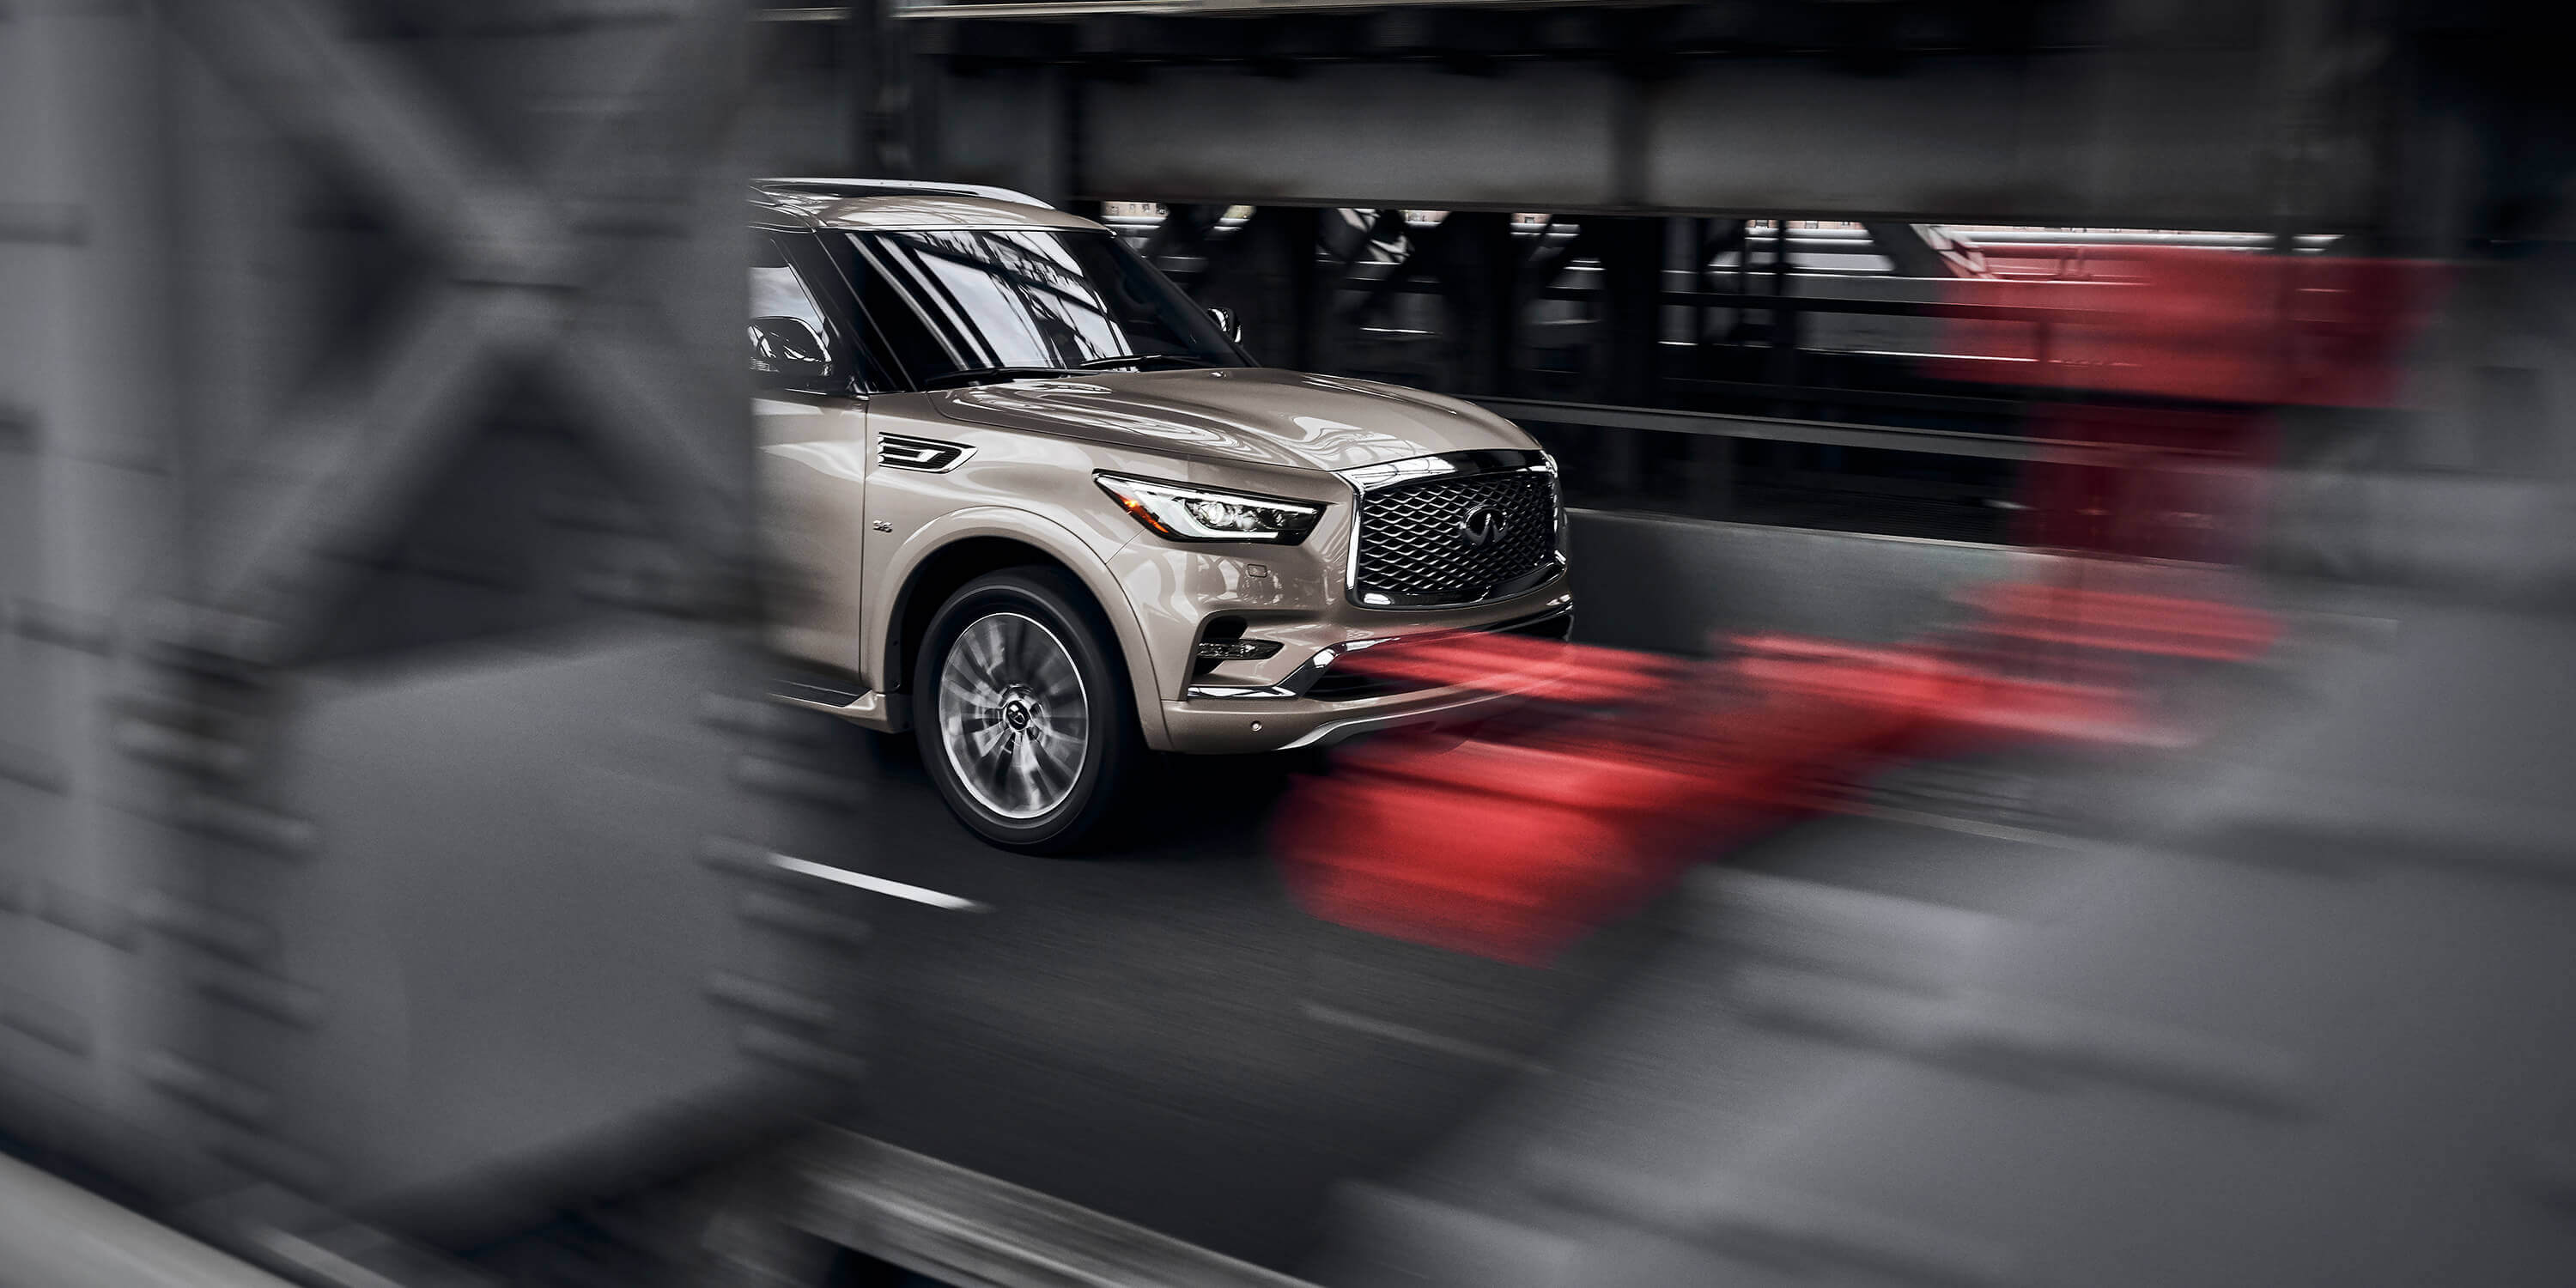 2019 INFINITI QX80 SUV Safety Safety Technologies Overview